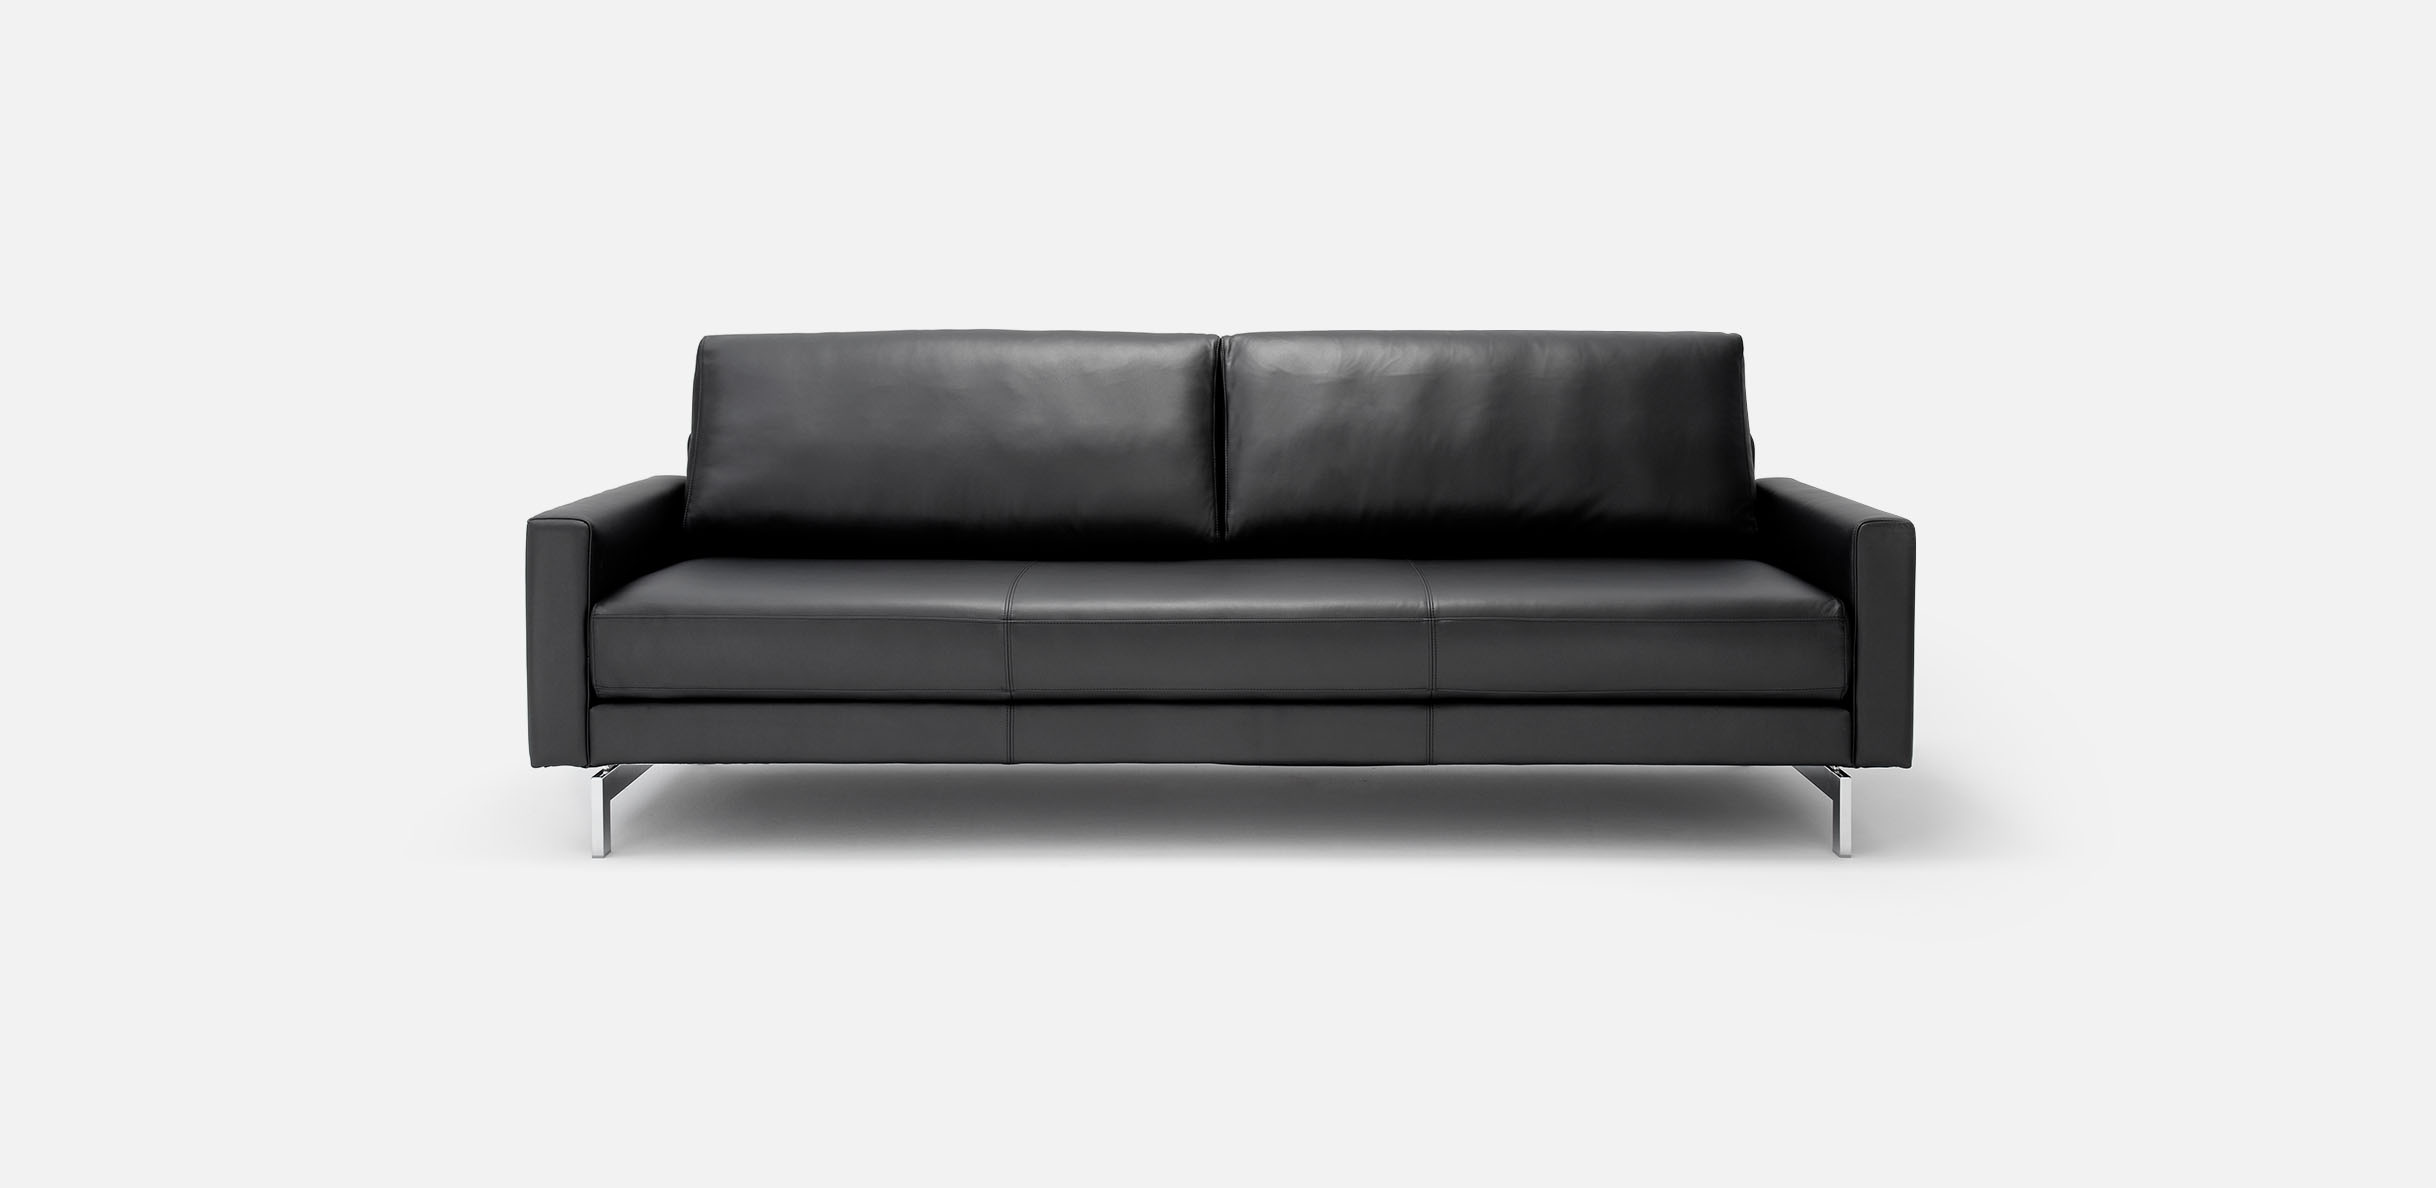 Bettsofa Rolf Benz Vida